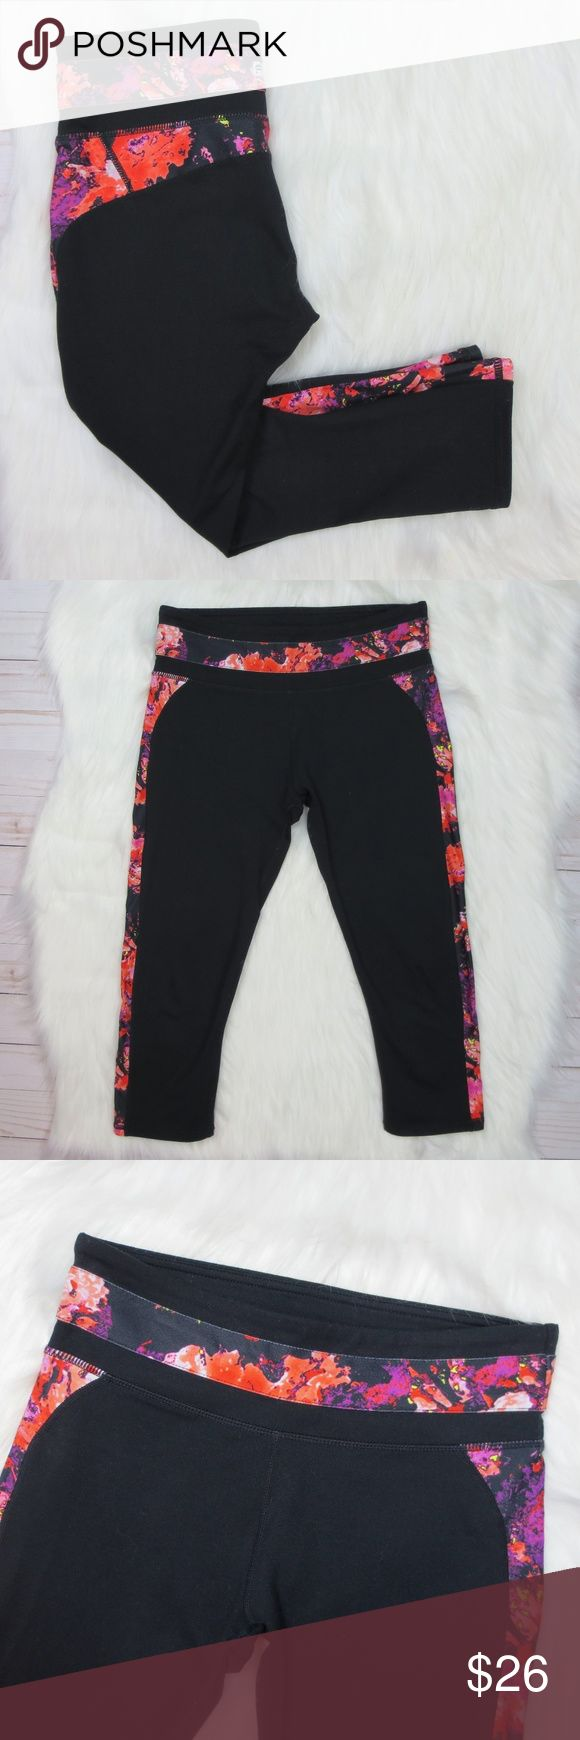 "Fabletics {Black} Floral Crop Black, cropped capri with floral waist and leg trim. Double-lined waistband for extra support. Moisture-wicking, chafe-resistant fabric. Brand new, perfect condition!  Laid flat during measurements: 26"" full length (top to hem). Fabletics Pants Capris"